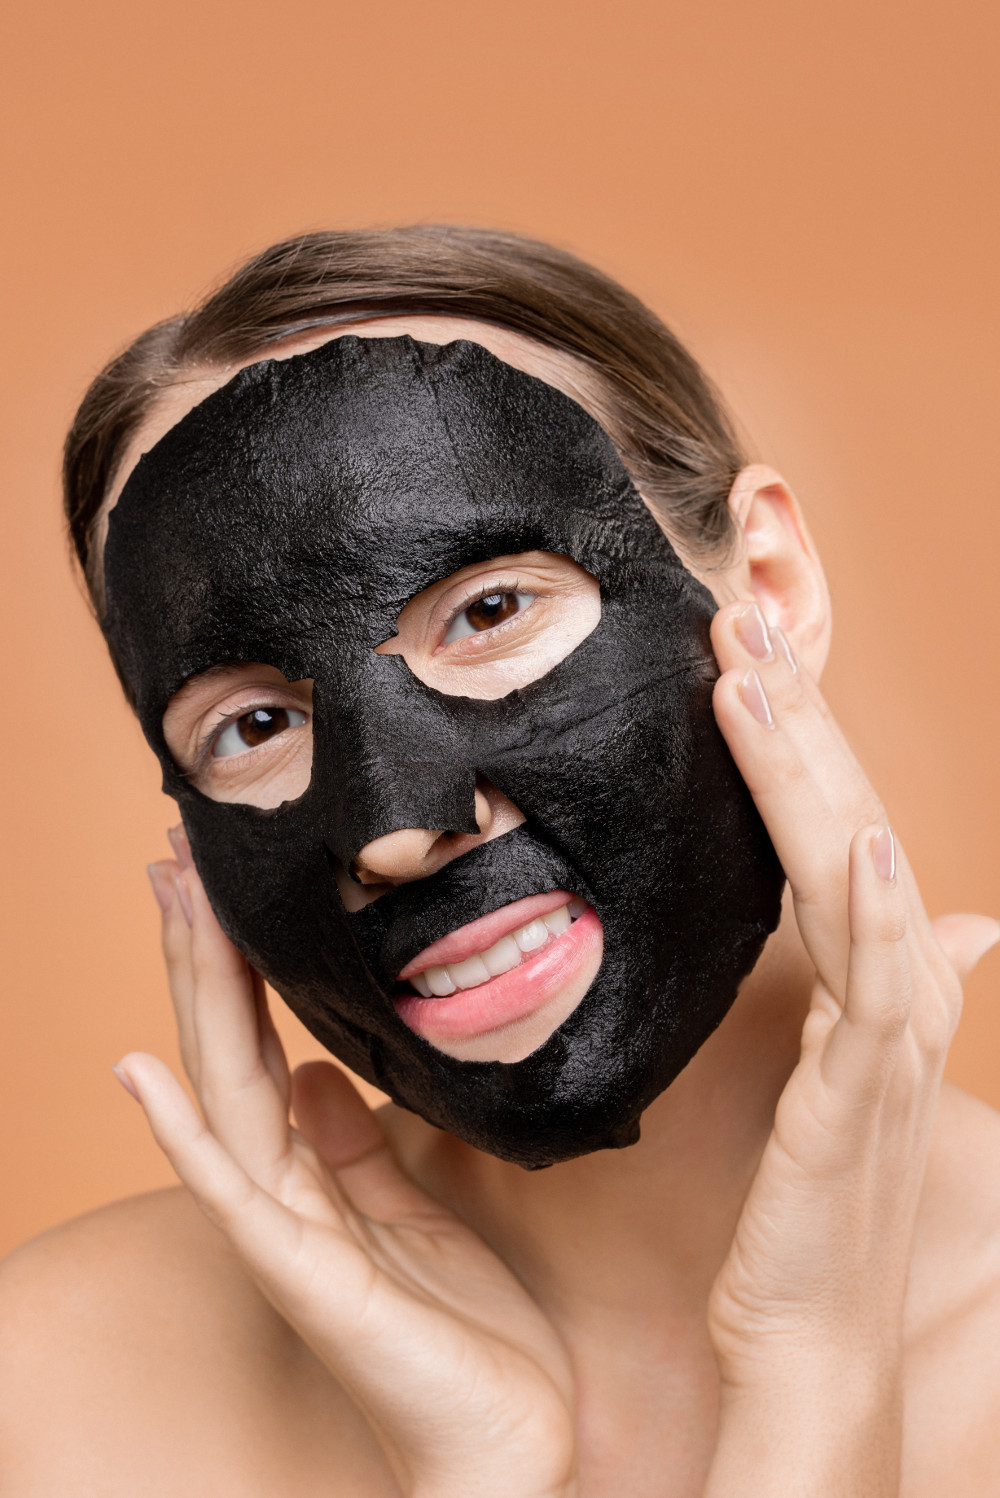 person covering face with black mask 3762559